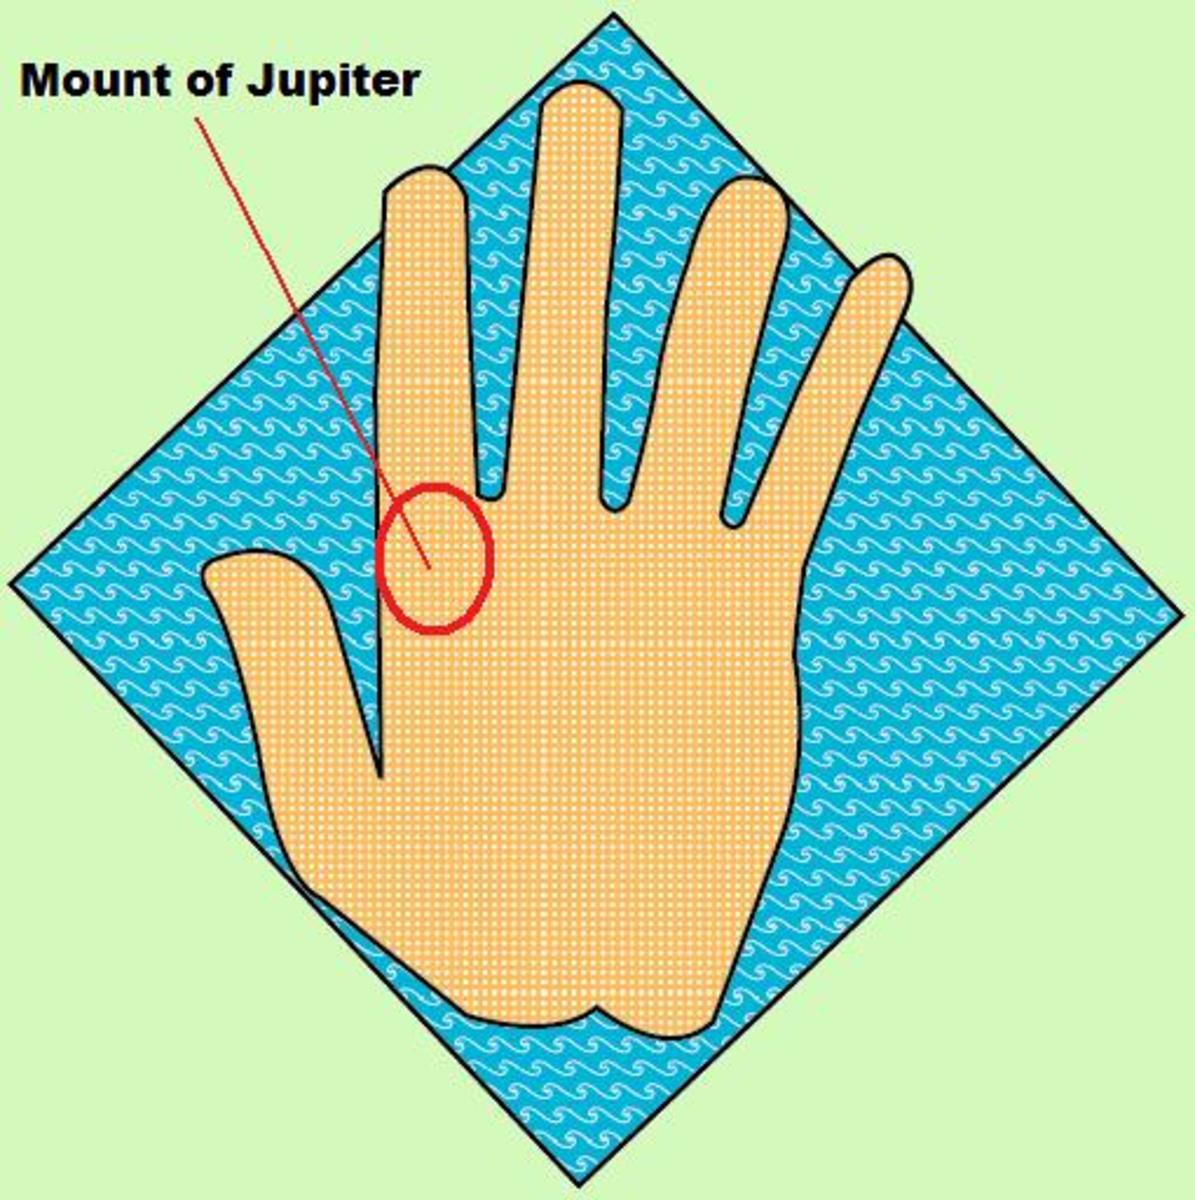 Mount of Jupiter beneath the forefinger